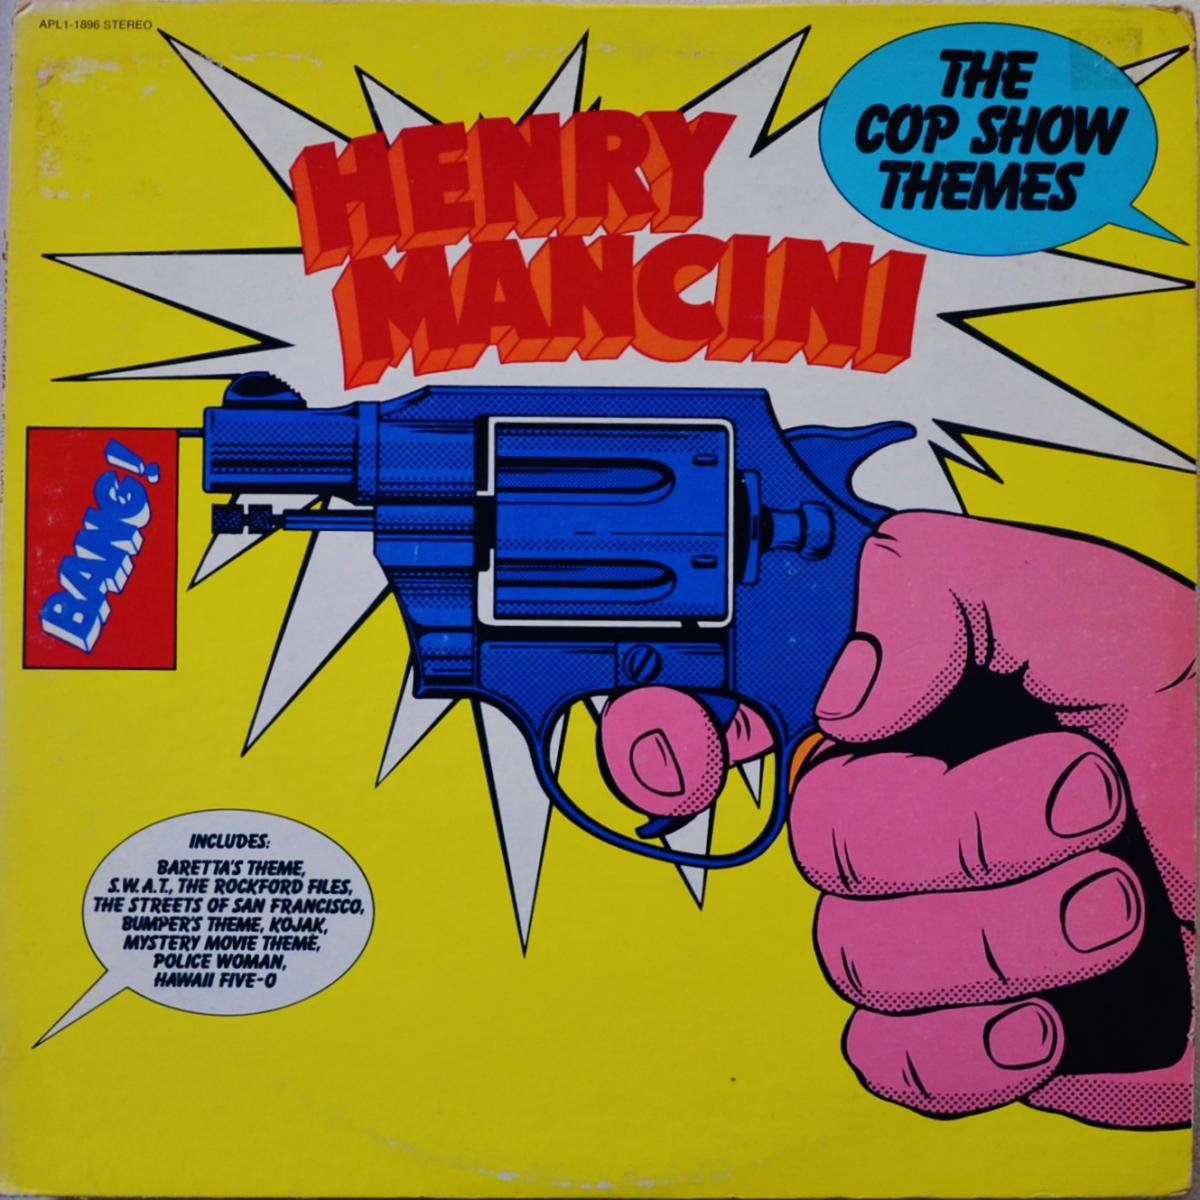 HENRY MANCINI / THE COP SHOW THEMES (LP)